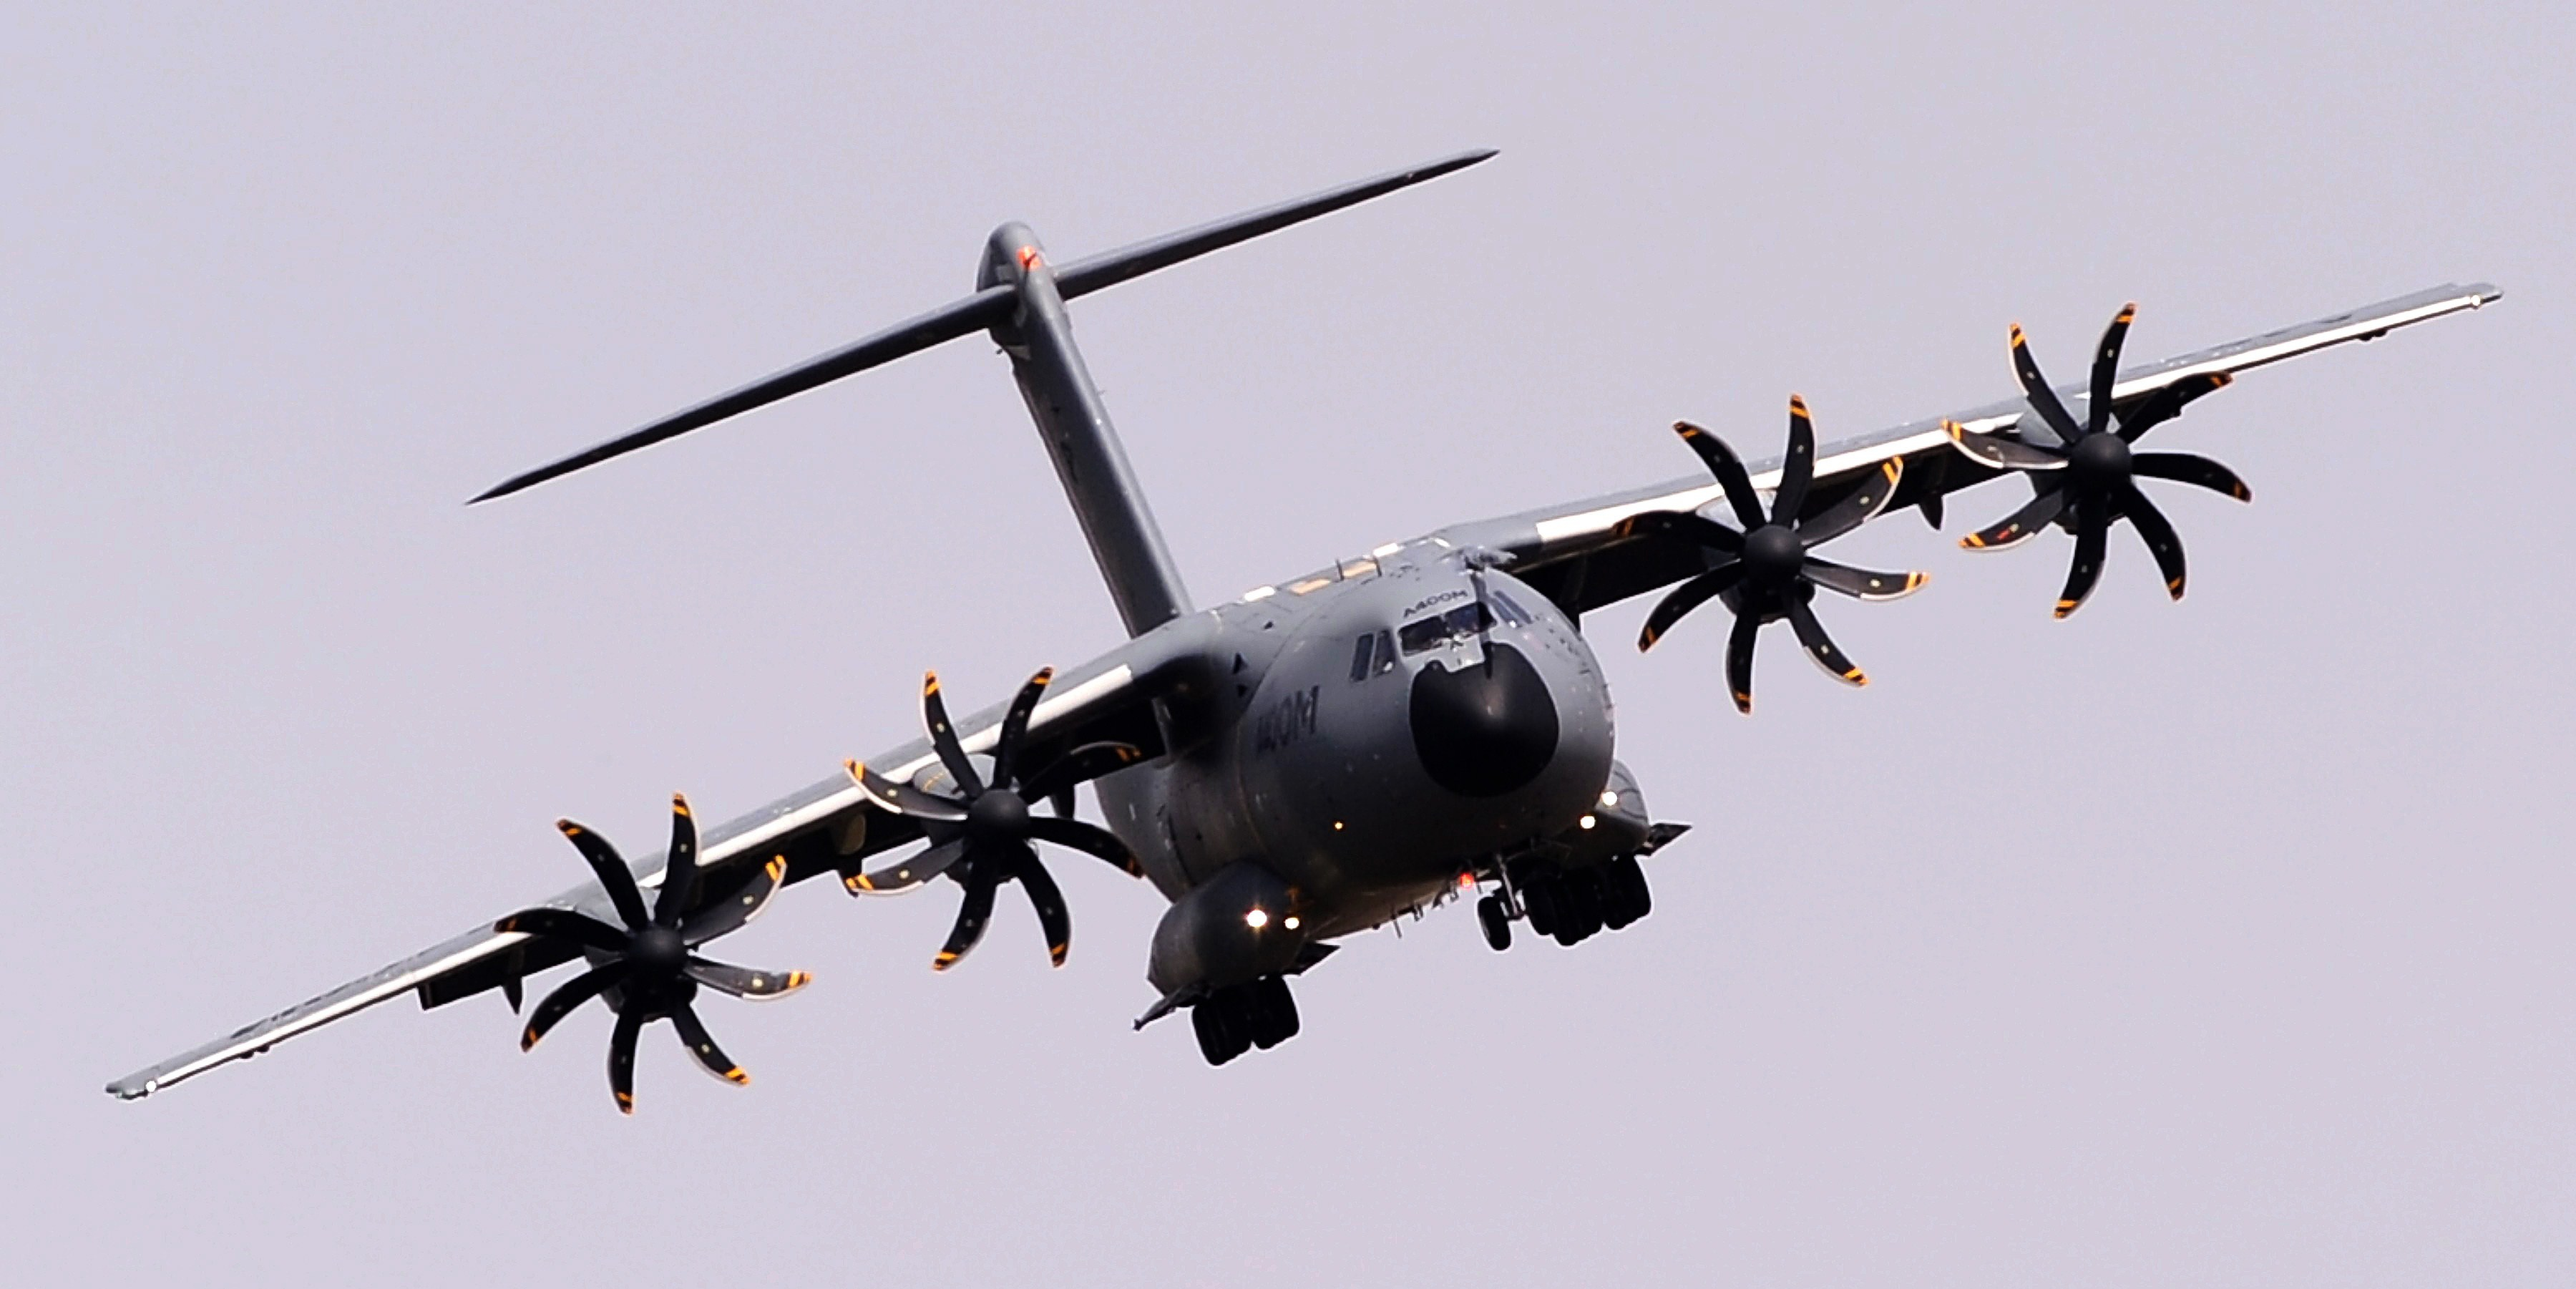 NATO buyers to meet with Airbus over billions in A400M fines